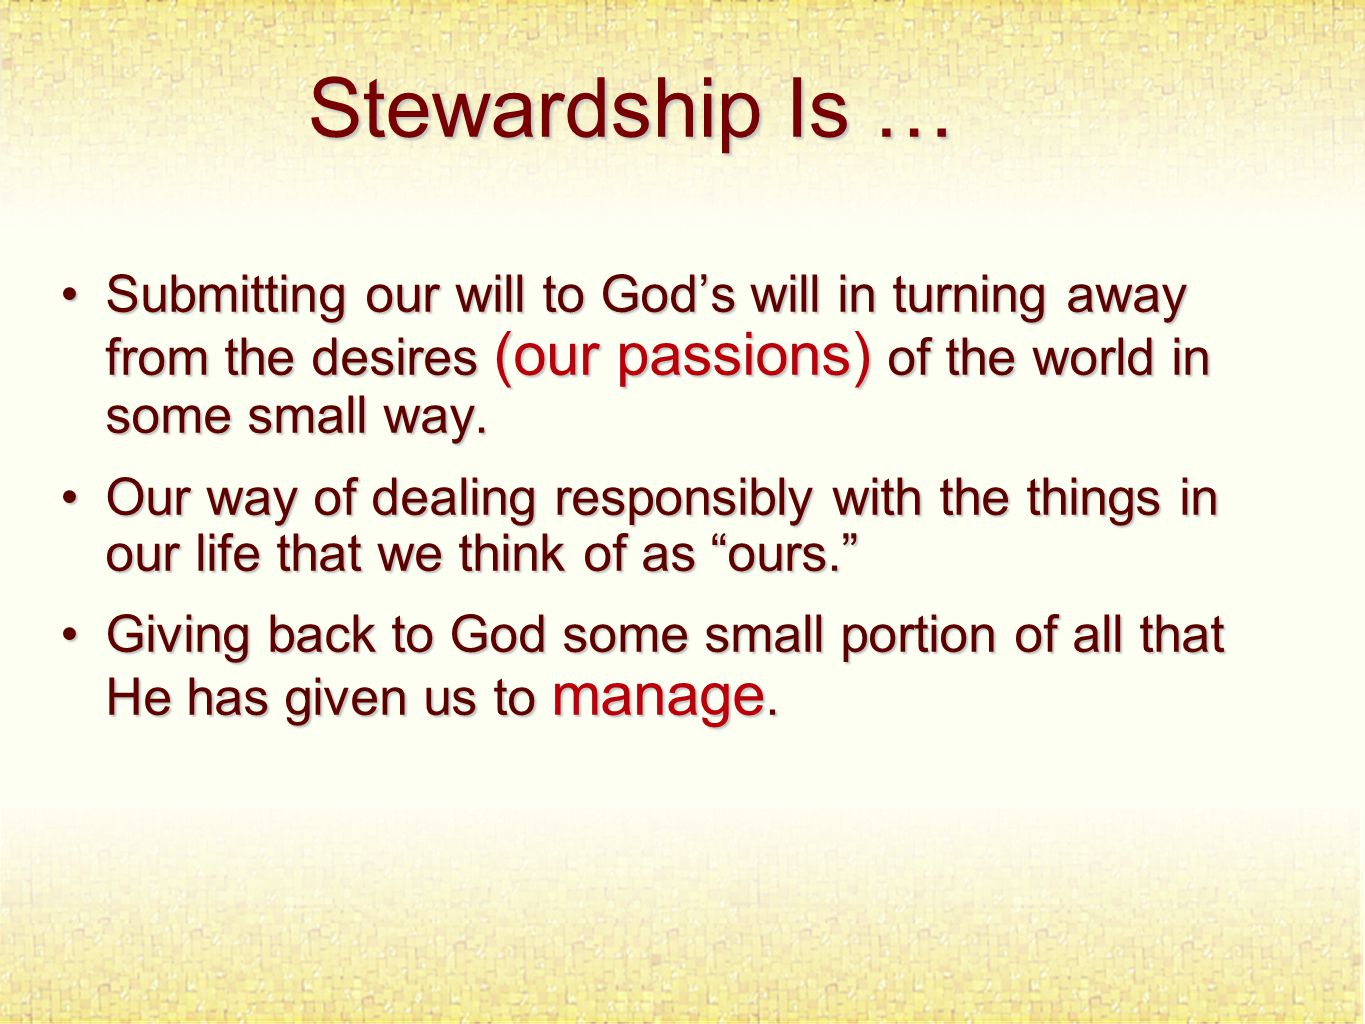 Stewardship Is … Submitting our will to God's will in turning away from the desires (our passions) of the world in some small way.Submitting our will to God's will in turning away from the desires (our passions) of the world in some small way.